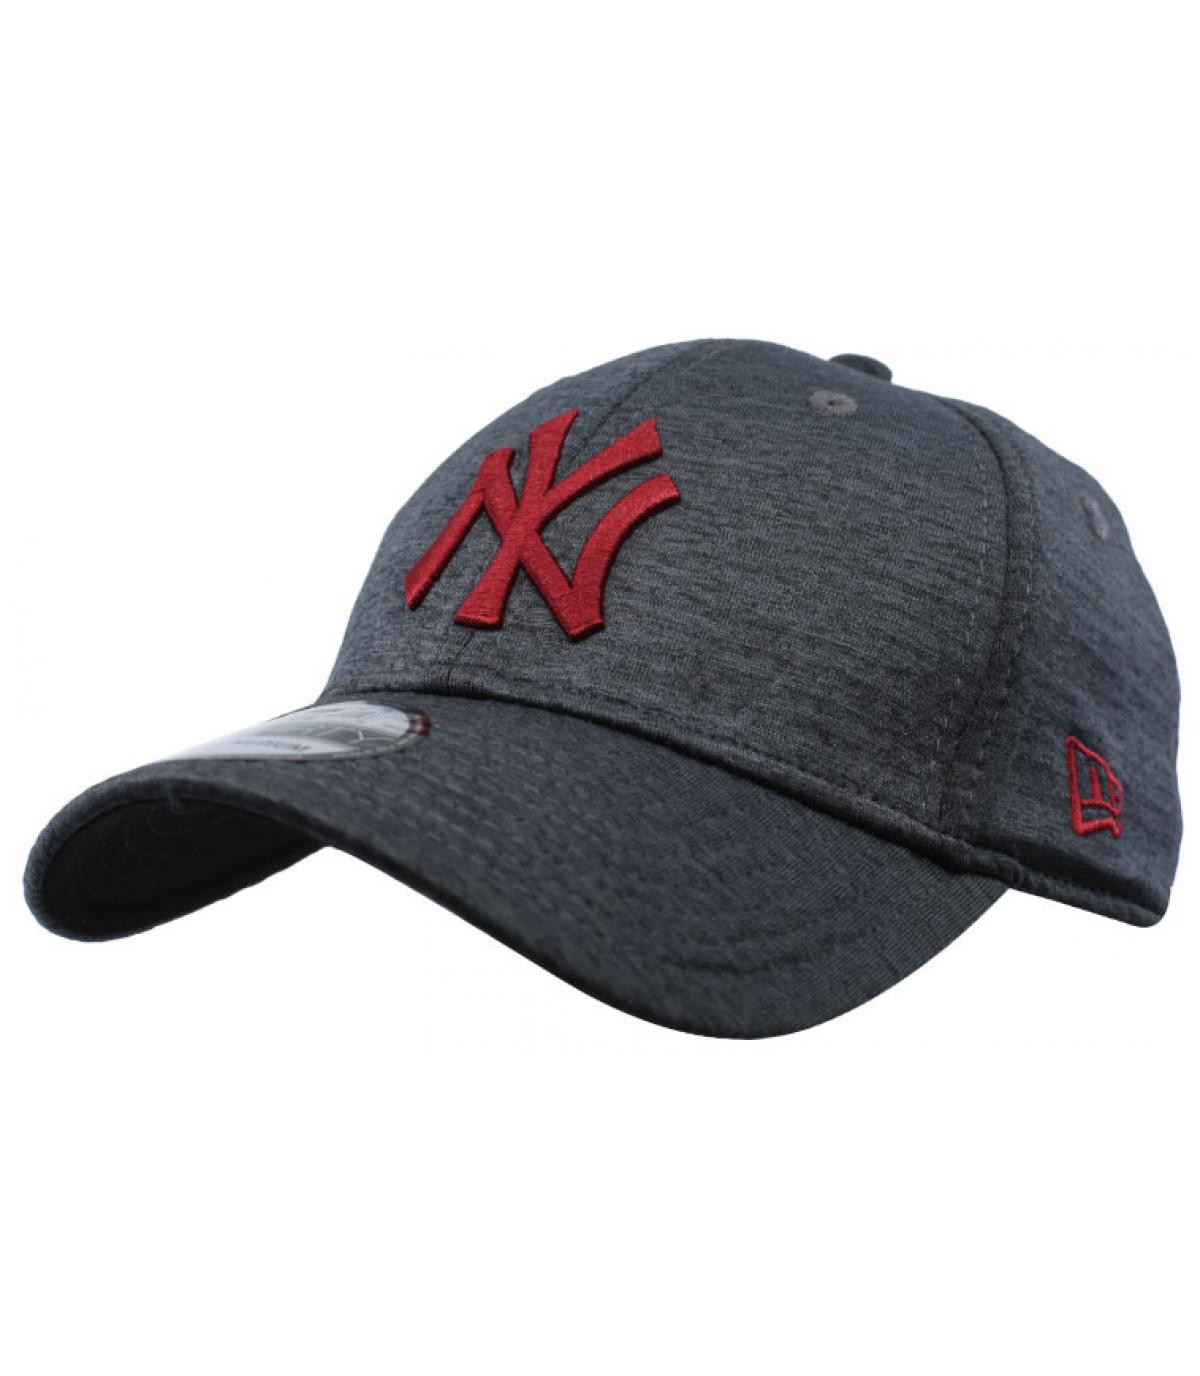 Détails Casquette NY Dryswitch Jersey 39Thirty black cardinal - image 2